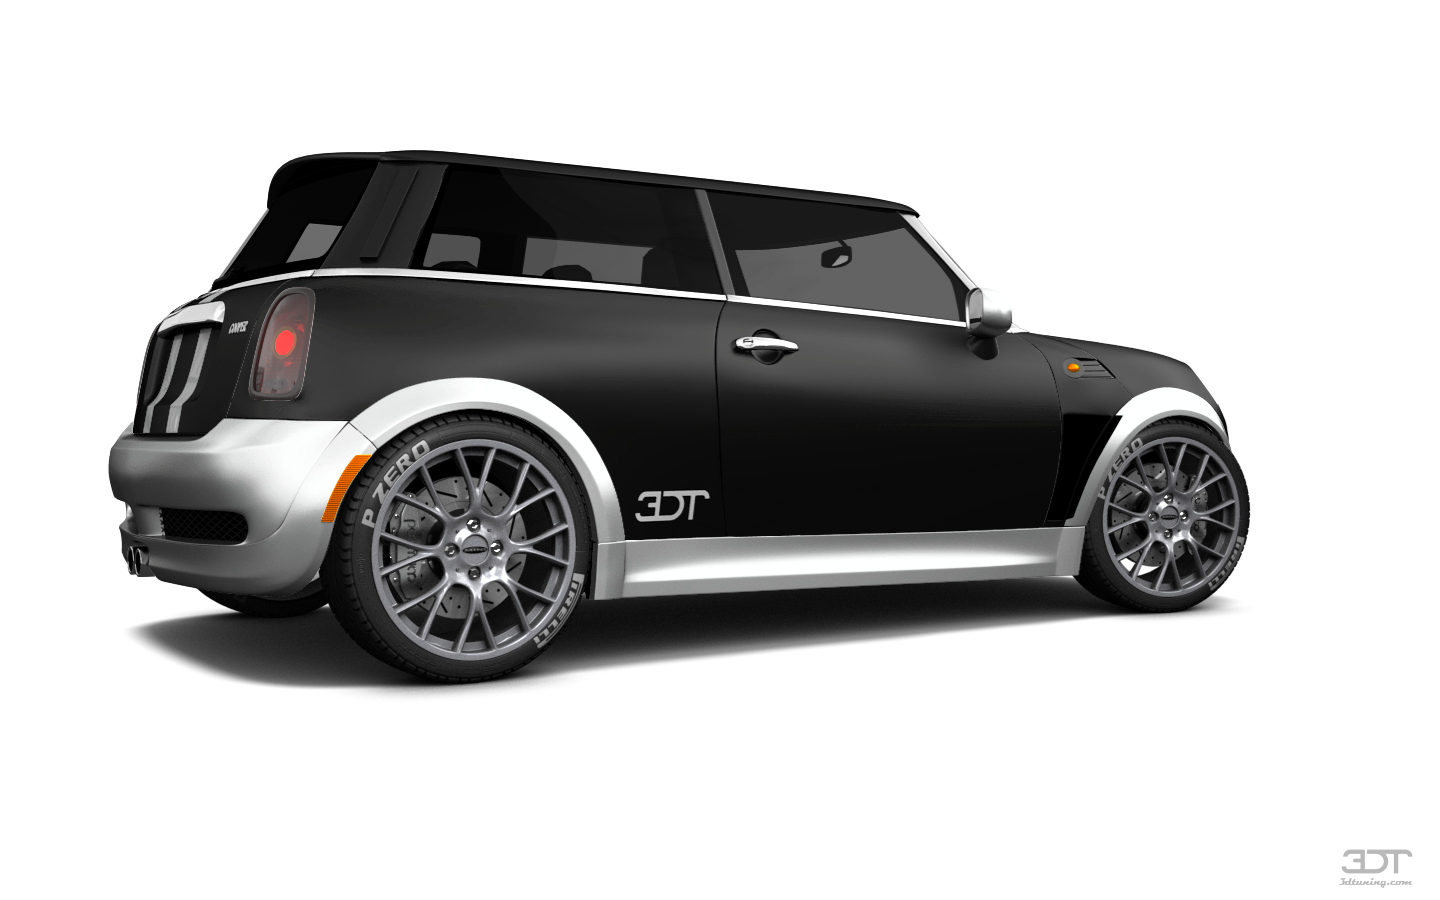 Mini Cooper 3 Door Hatchback 2005 tuning